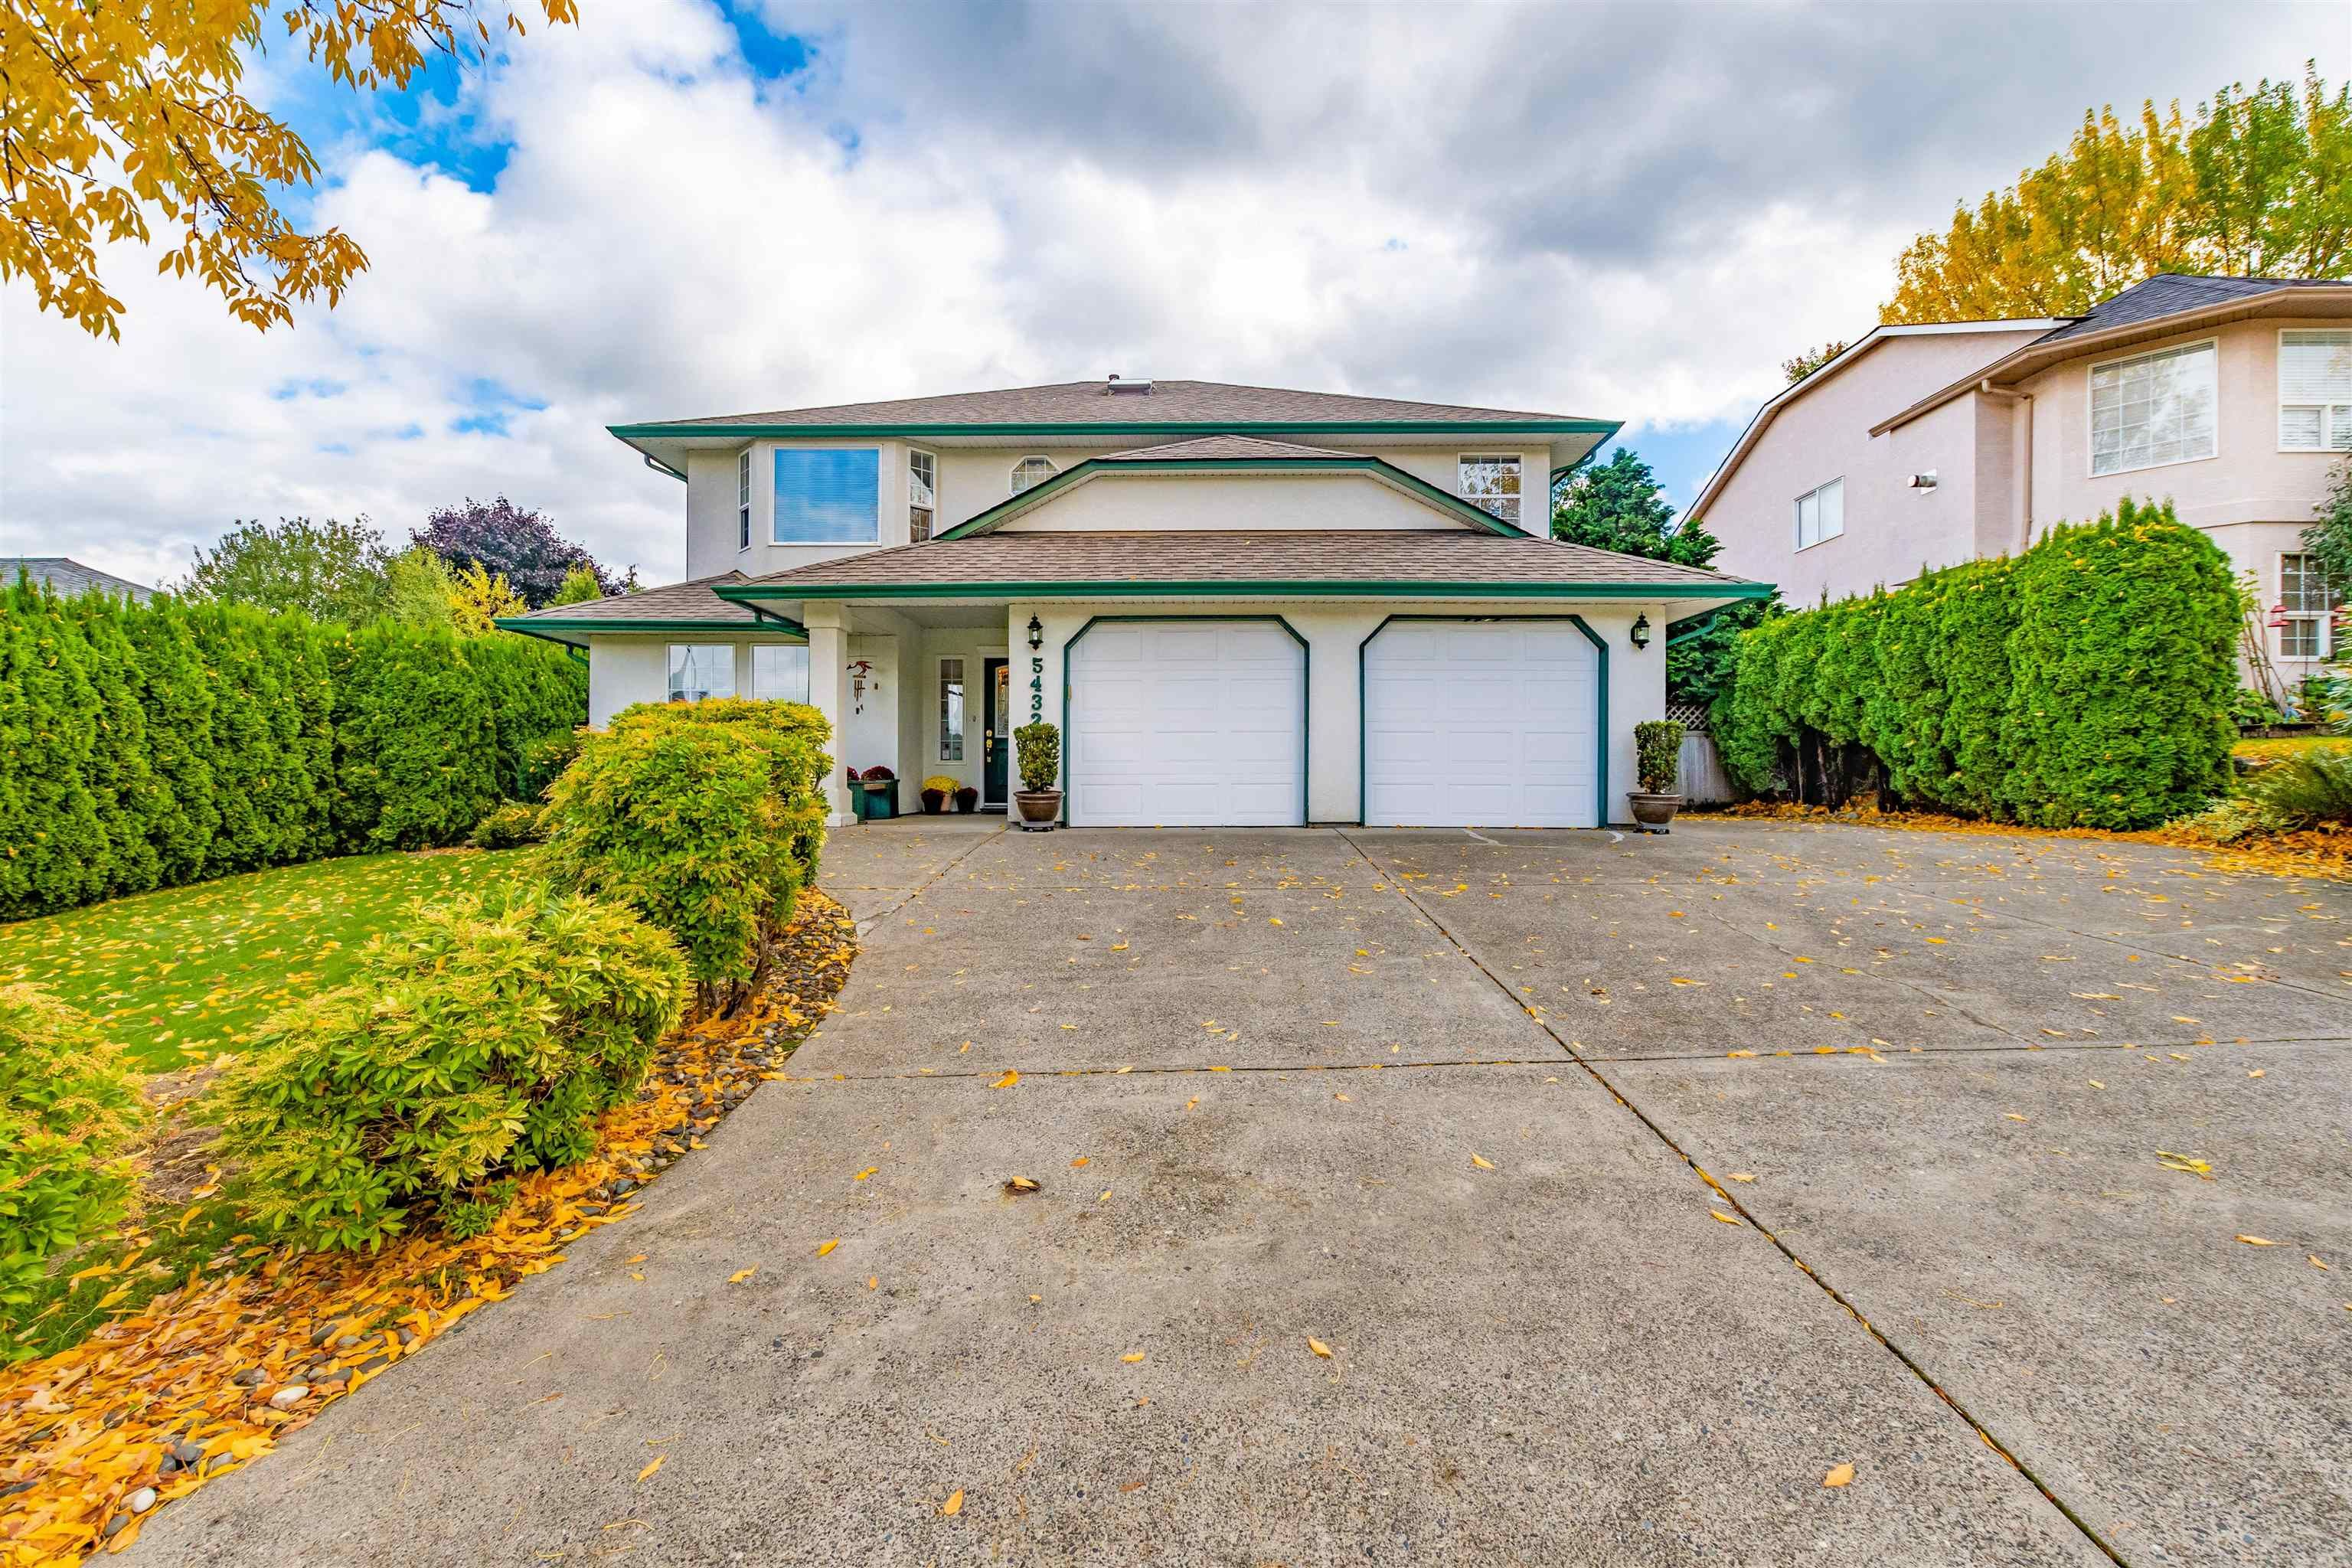 """Main Photo: 5432 HIGHROAD Crescent in Chilliwack: Promontory House for sale in """"PROMONTORY"""" (Sardis)  : MLS®# R2622055"""